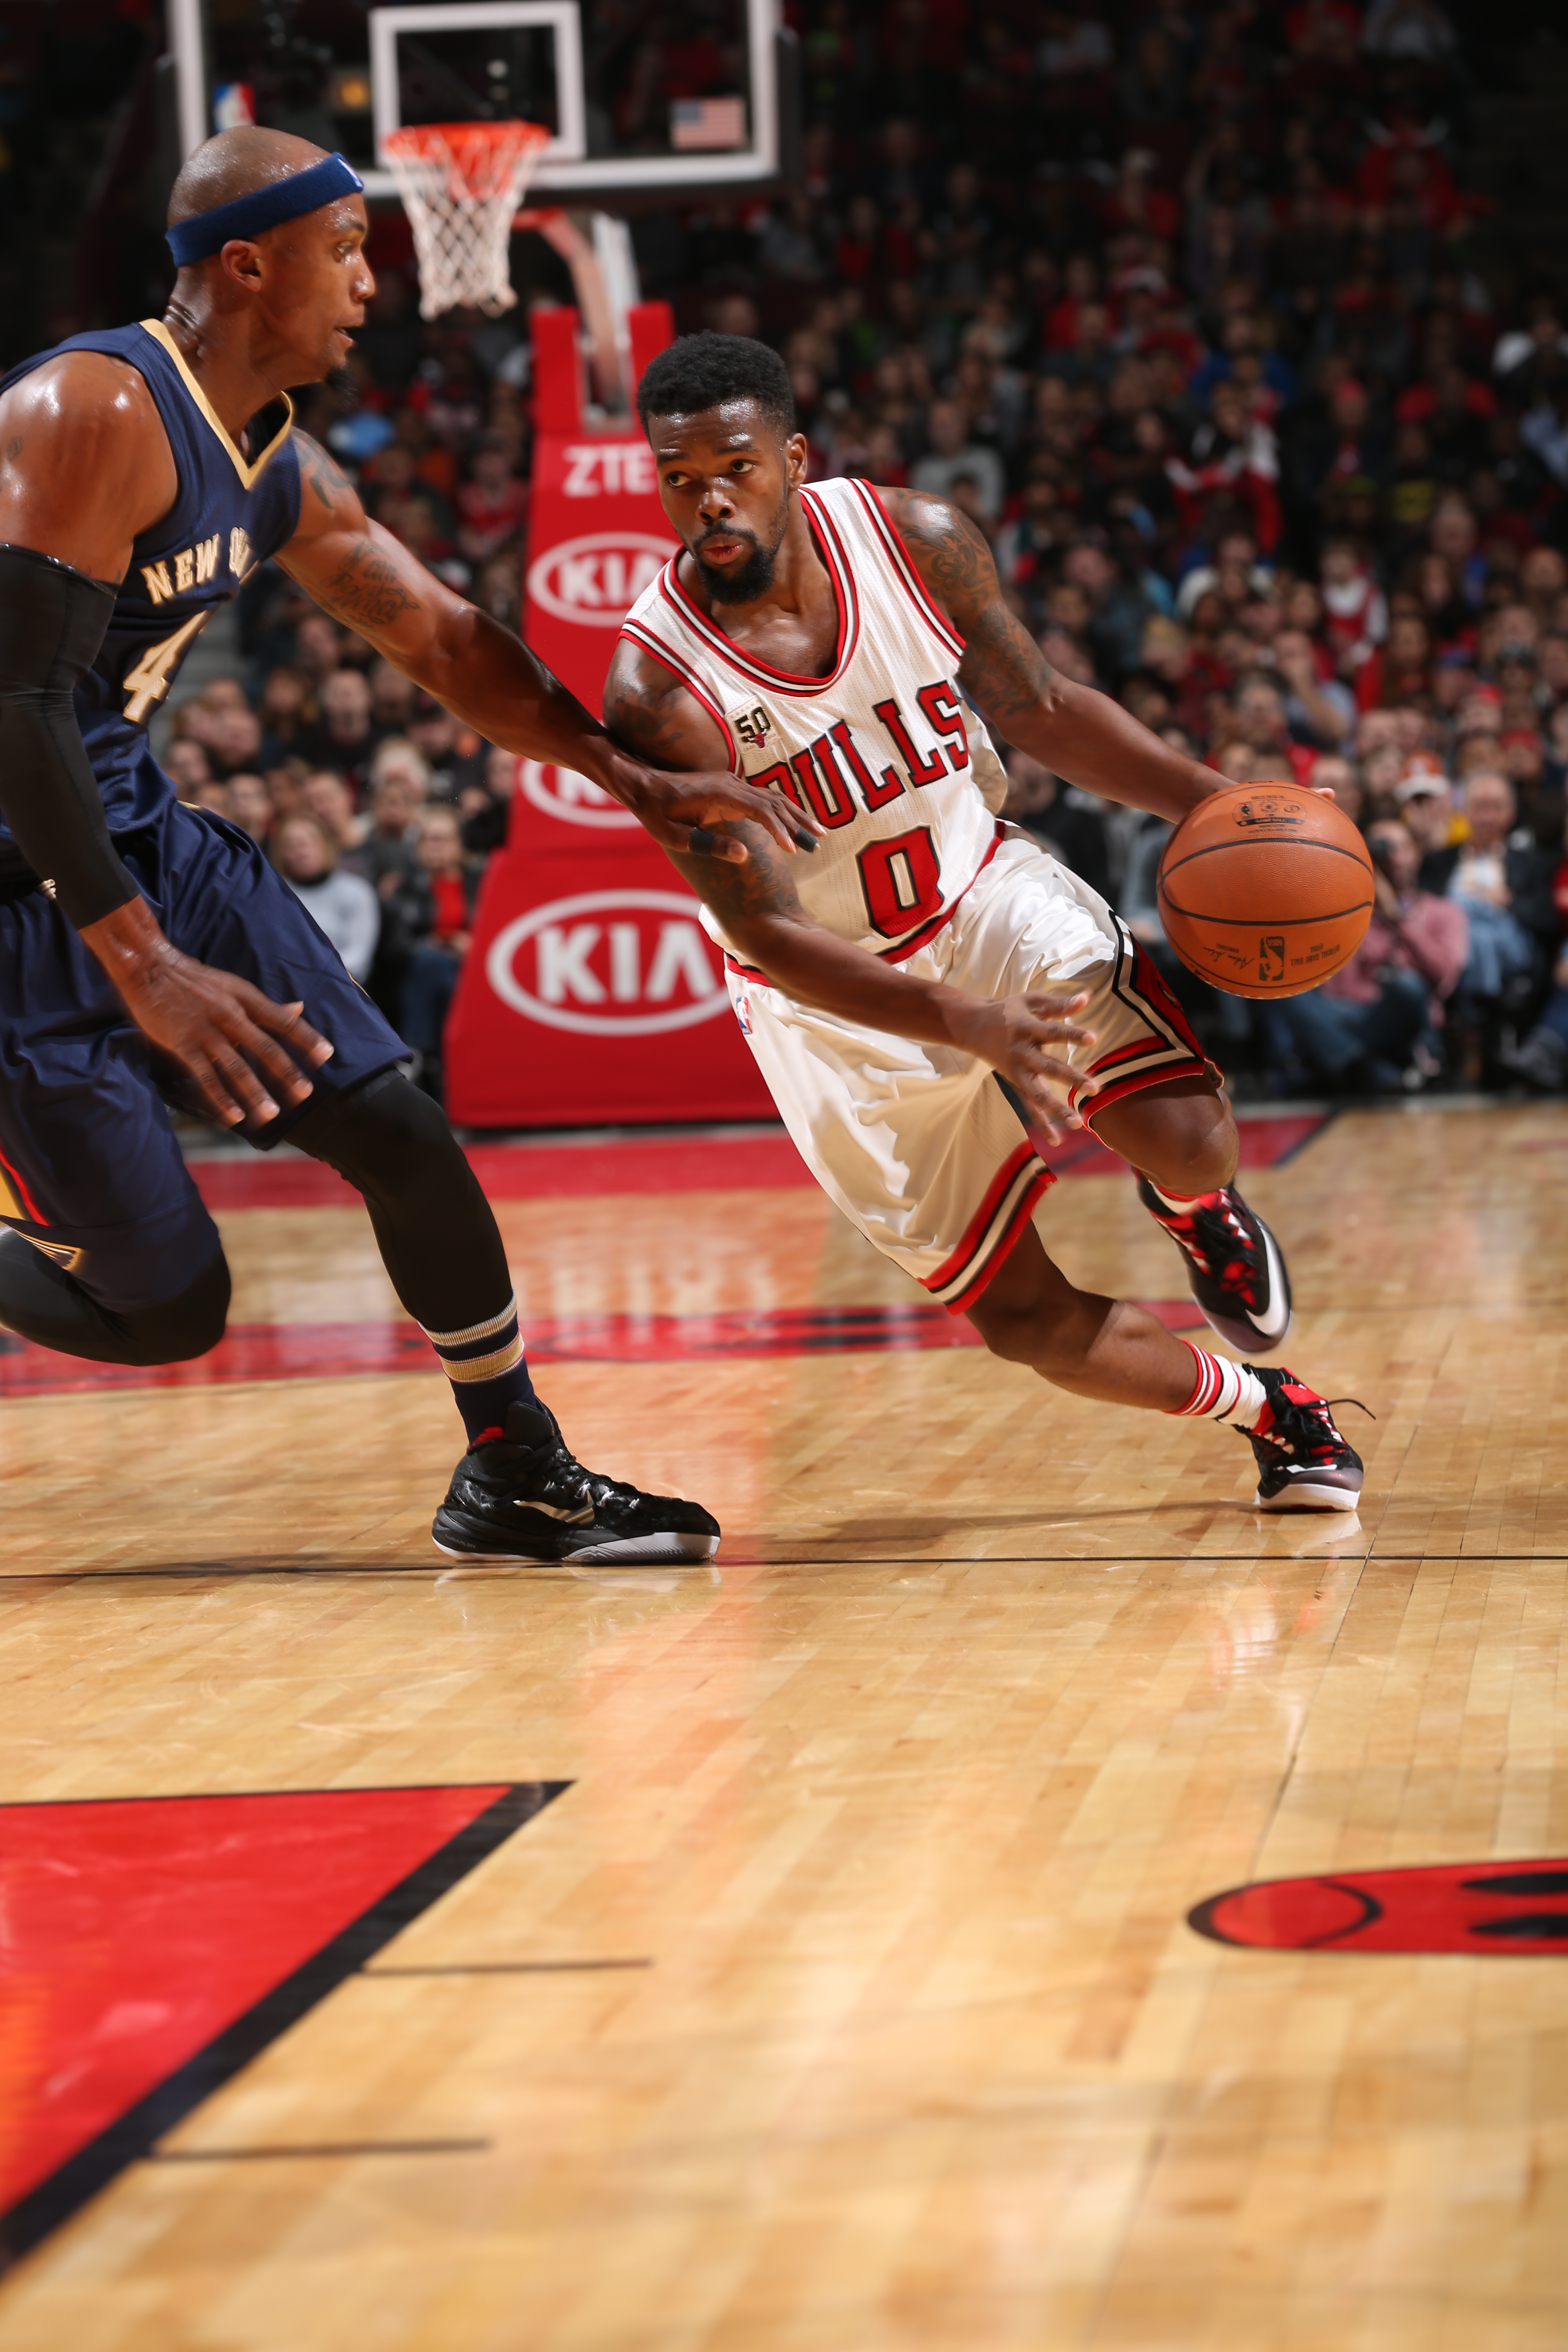 CHICAGO, IL - DECEMBER 12:  Aaron Brooks #0 of the Chicago Bulls drives to the basket against the New Orleans Pelicans on December 12, 2015 at the United Center in Chicago, Illinois. (Photo by David Sherman/NBAE via Getty Images)